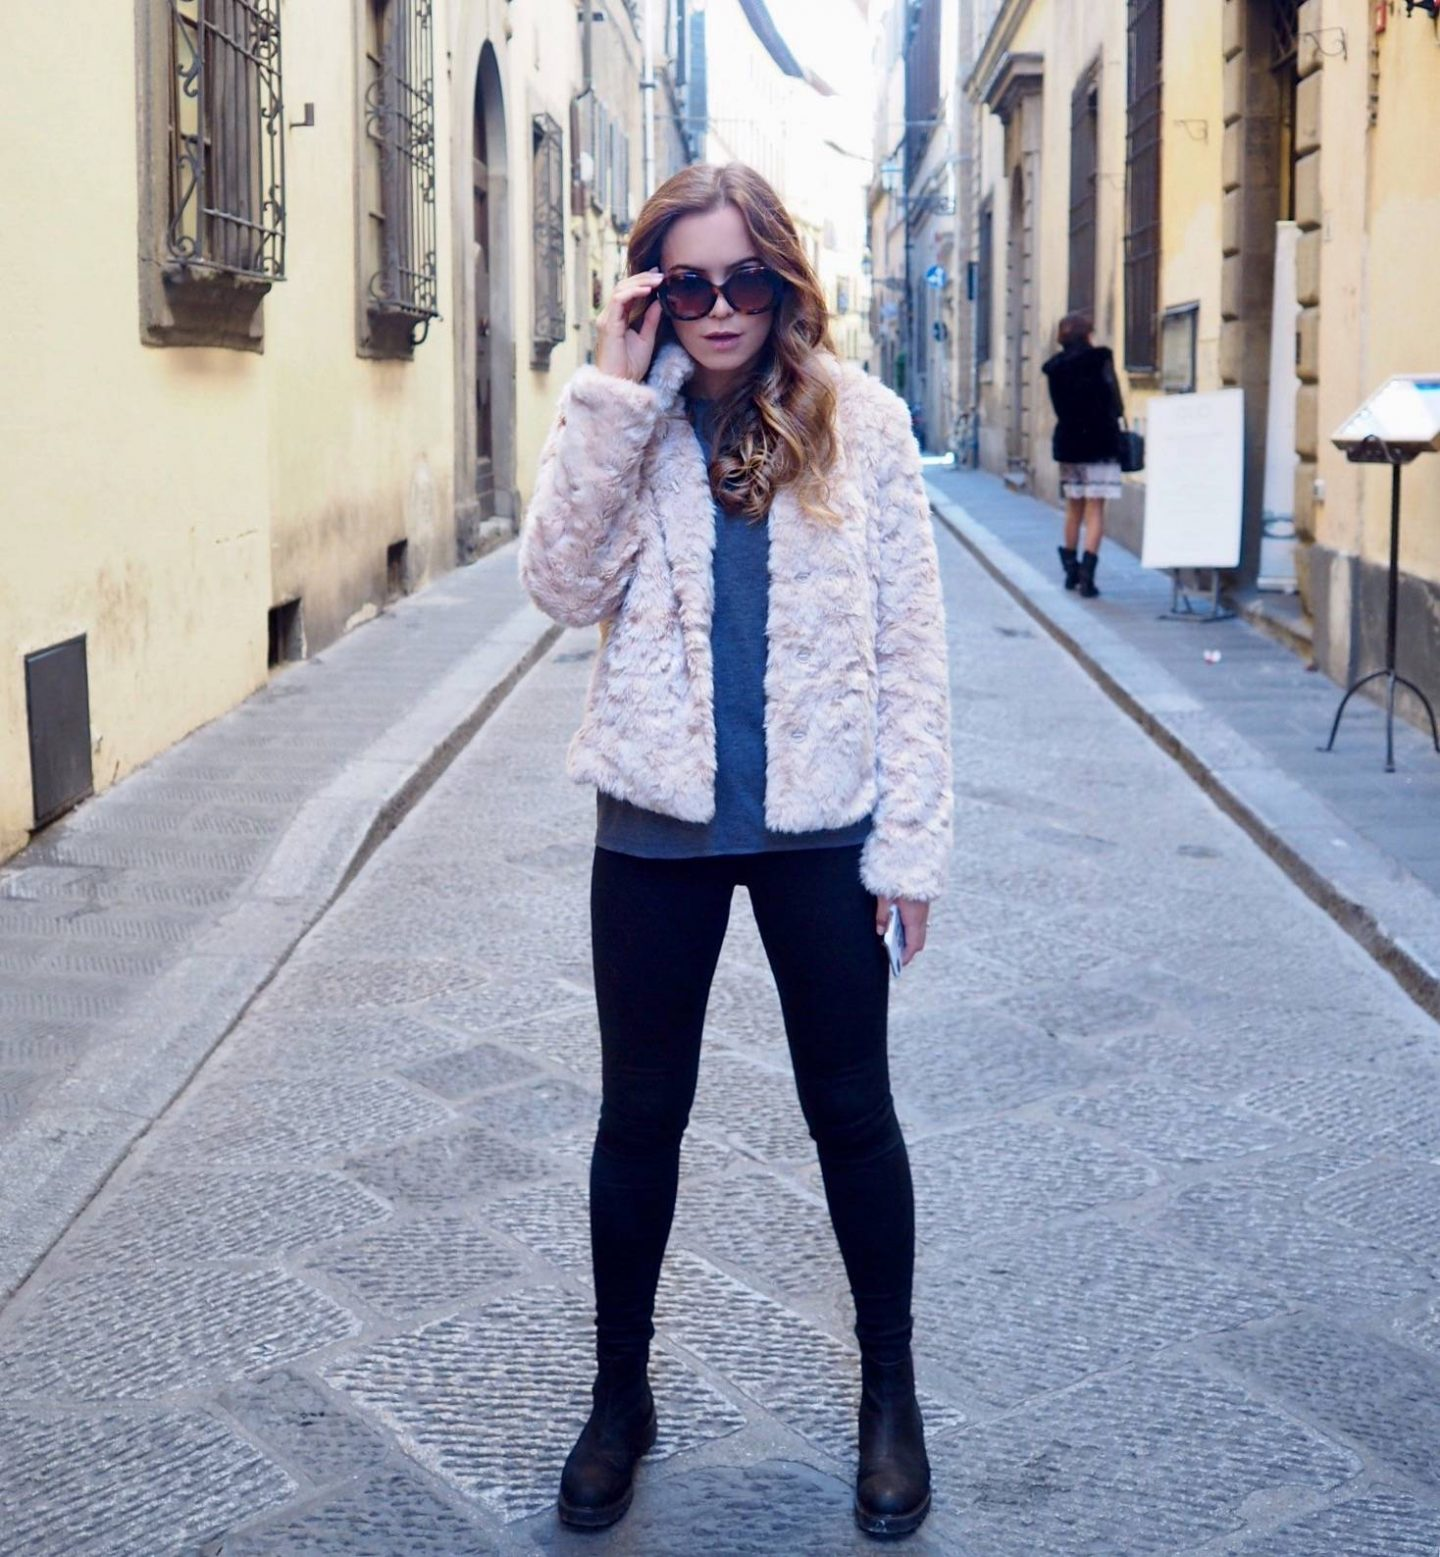 THE PERFECT OUTFITS FOR A CITY BREAK | Megan Taylor